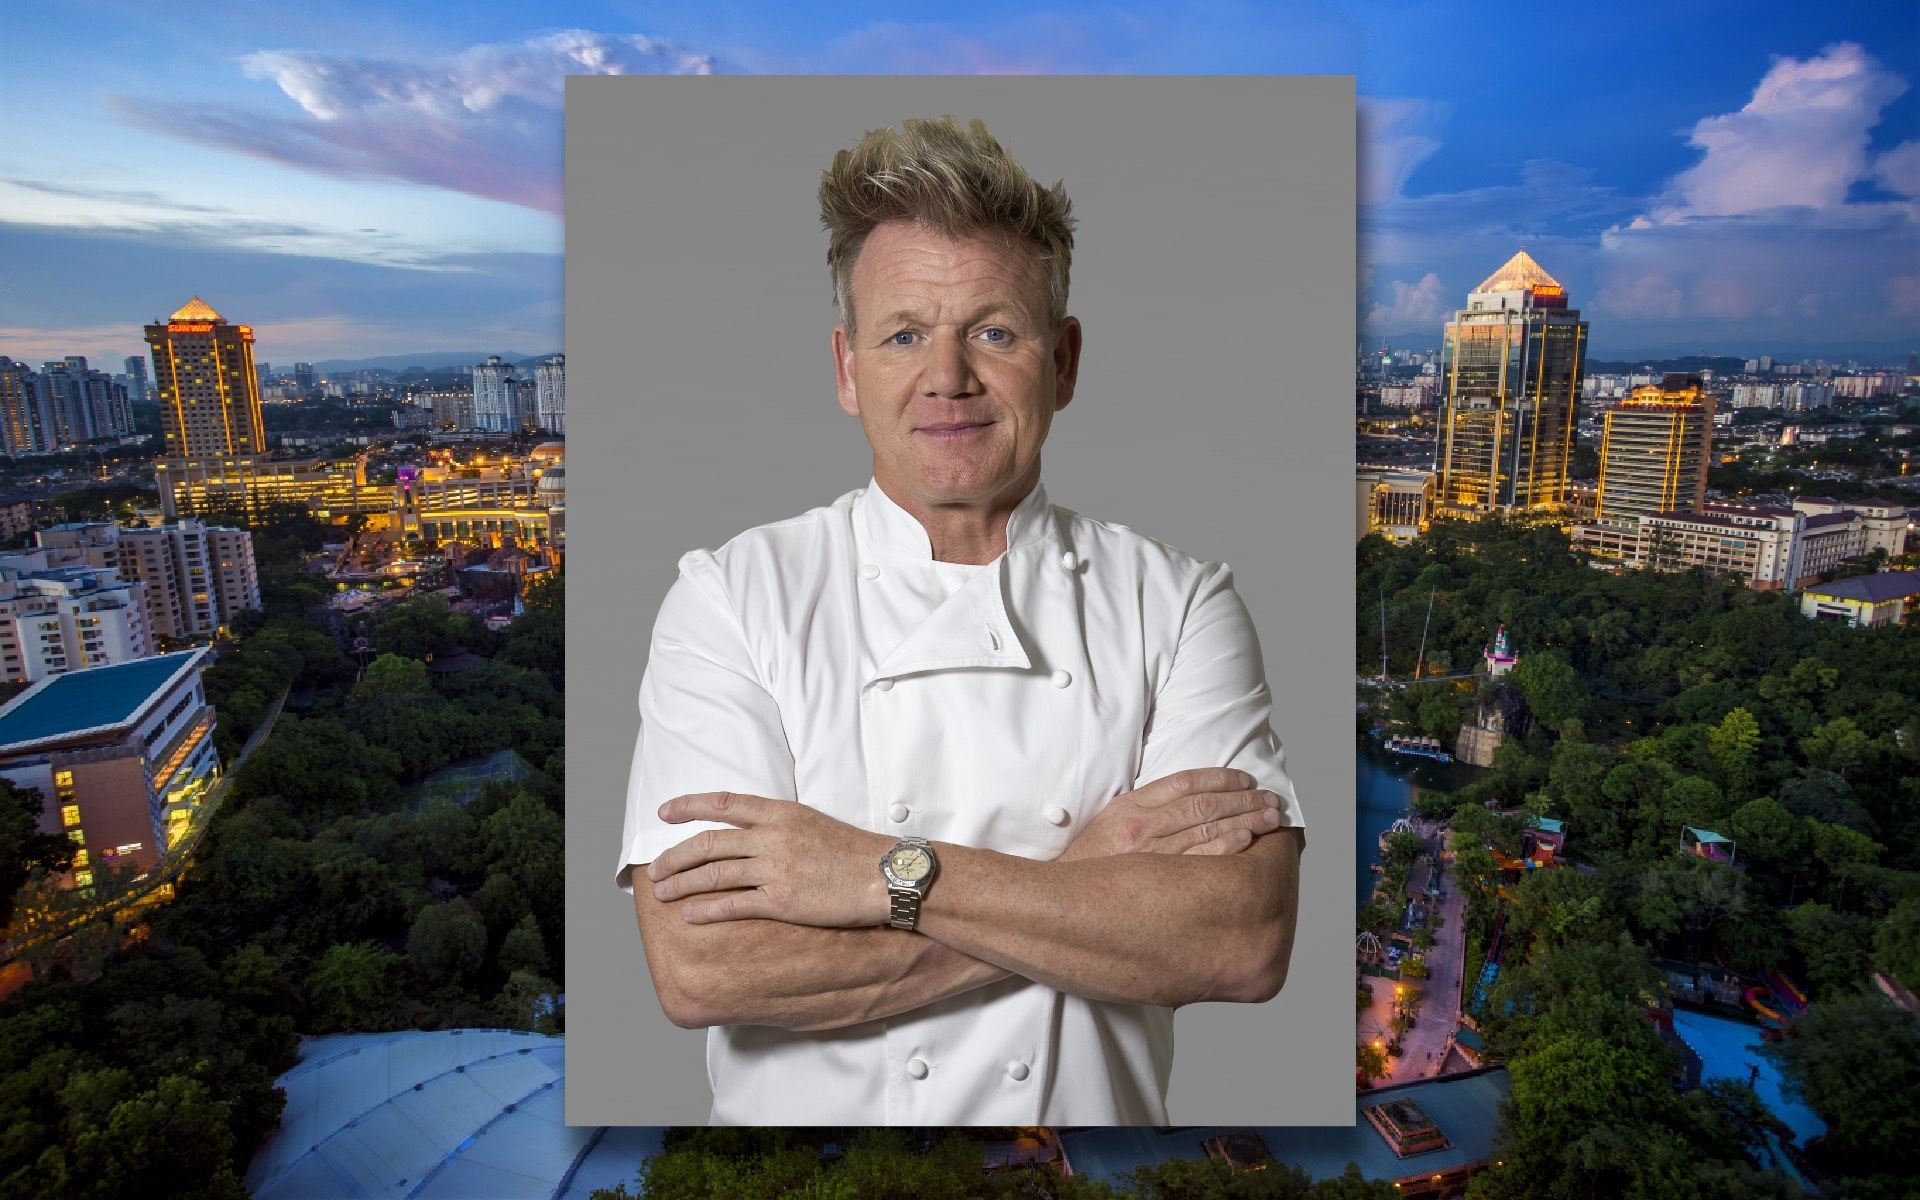 Gordon Ramsay To Open Restaurant In Malaysia In Partnership With Sunway Resort